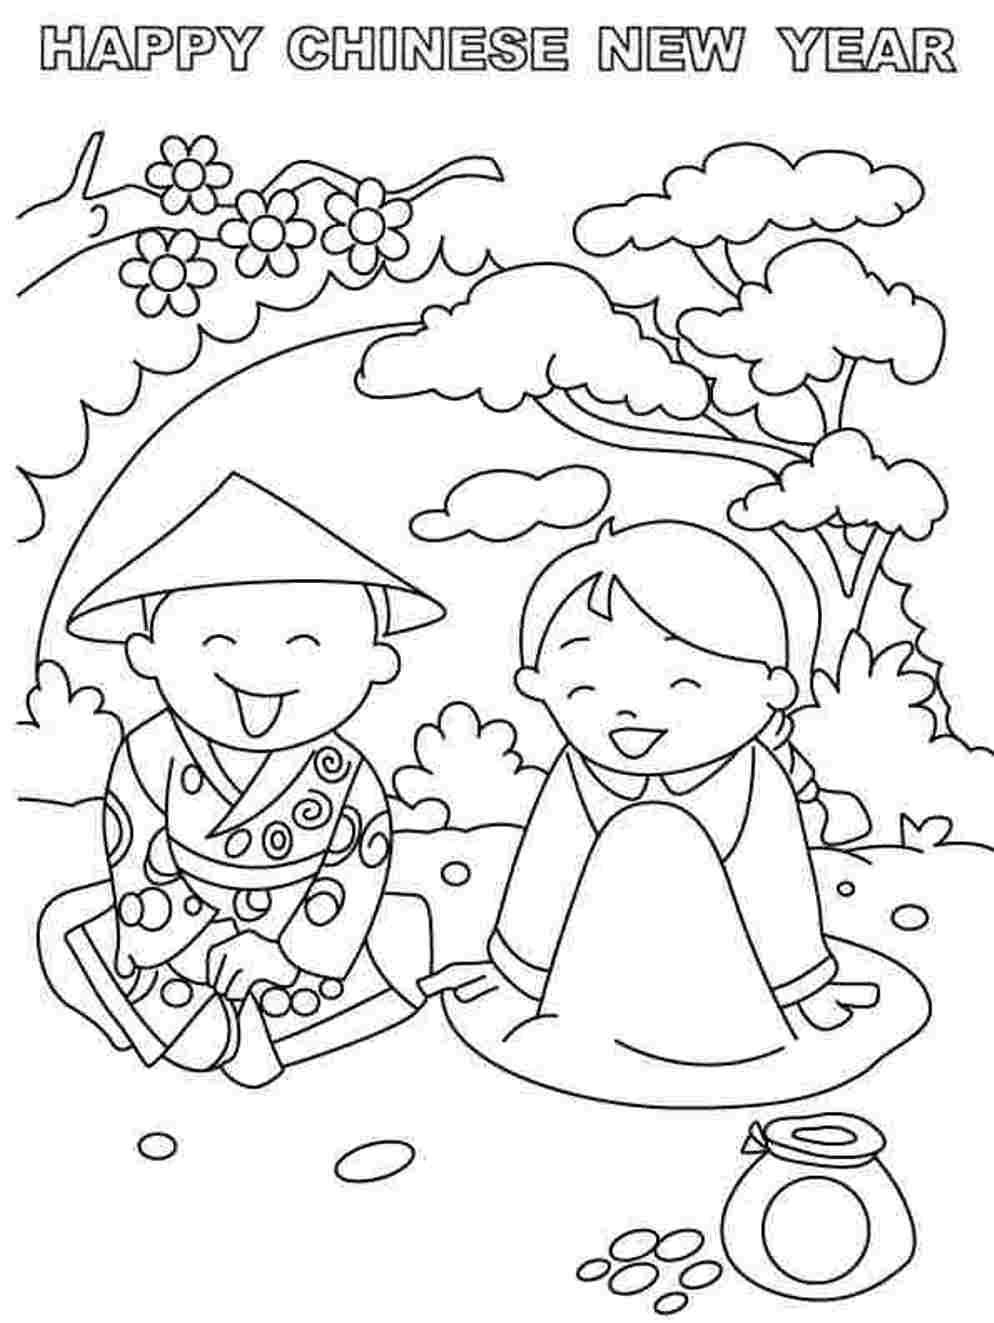 chinese colouring sheets chinese new year coloring pages to download and print for free sheets chinese colouring